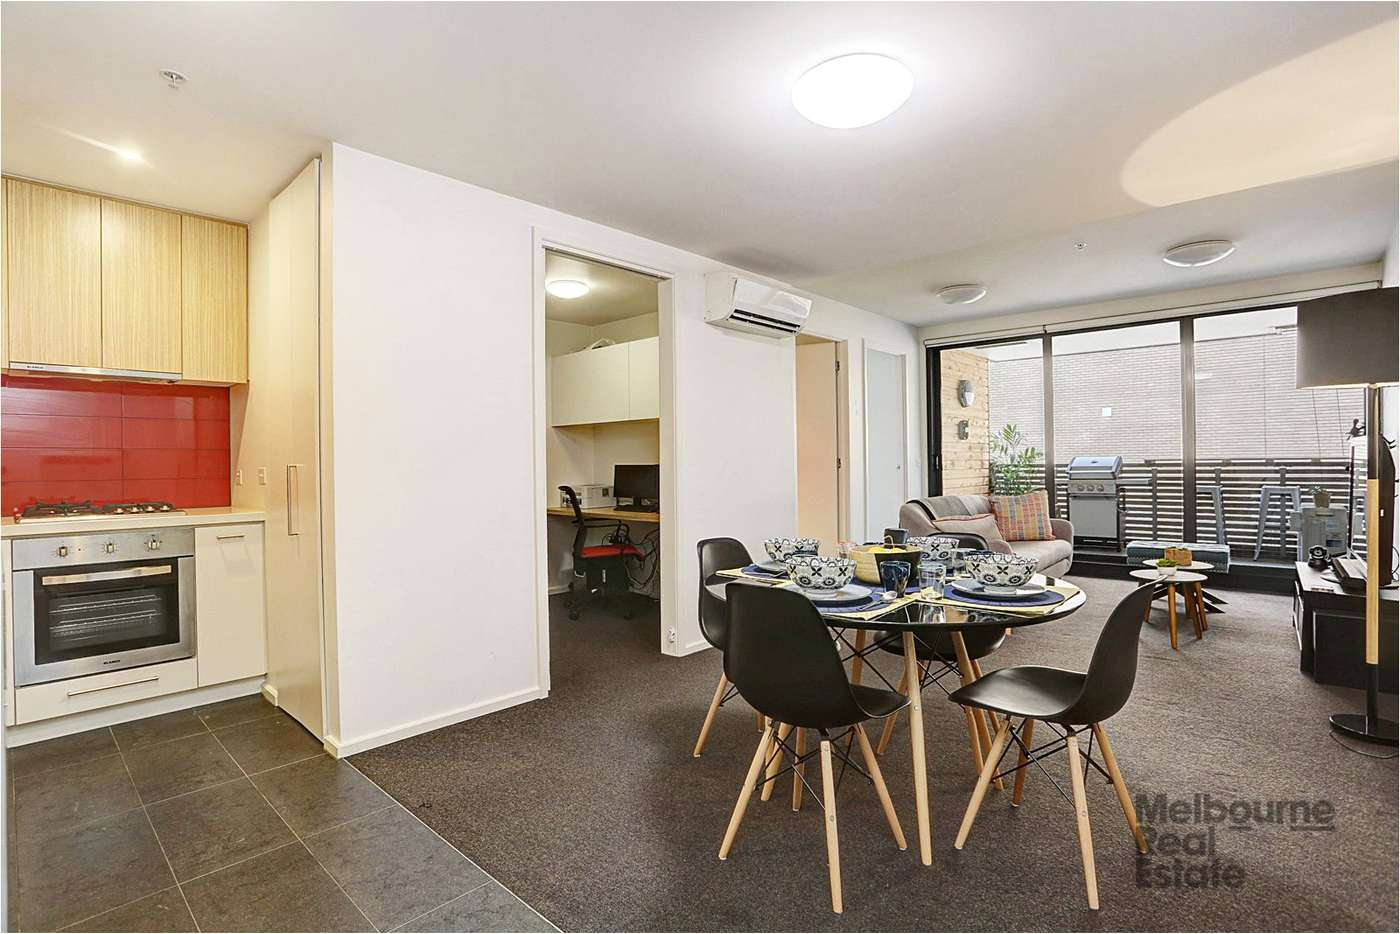 Main view of Homely apartment listing, 202/152 Peel Street, Windsor, VIC 3181